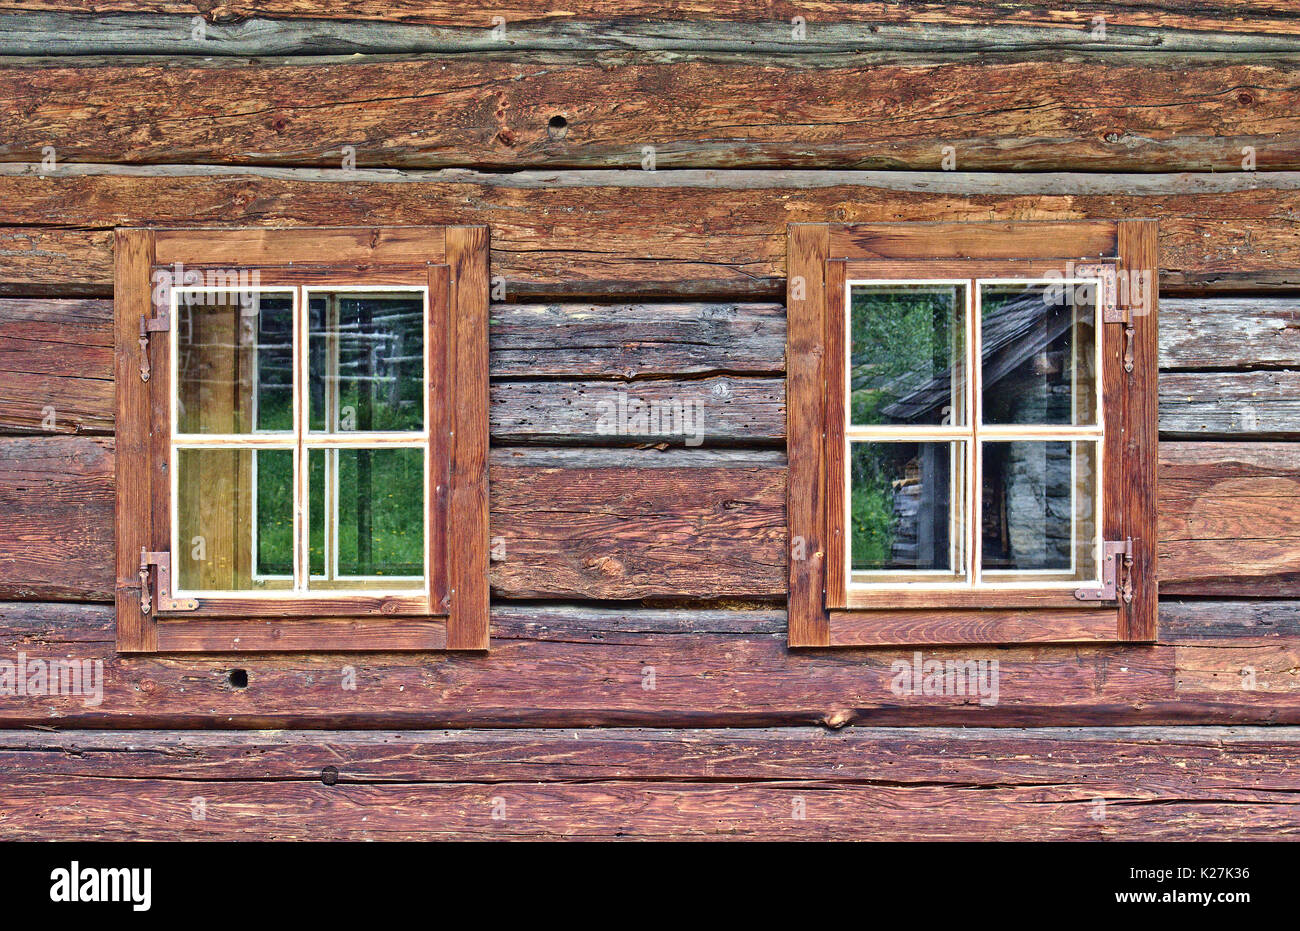 Ranch style house stock photos ranch style house stock images alamy for Log cabin window